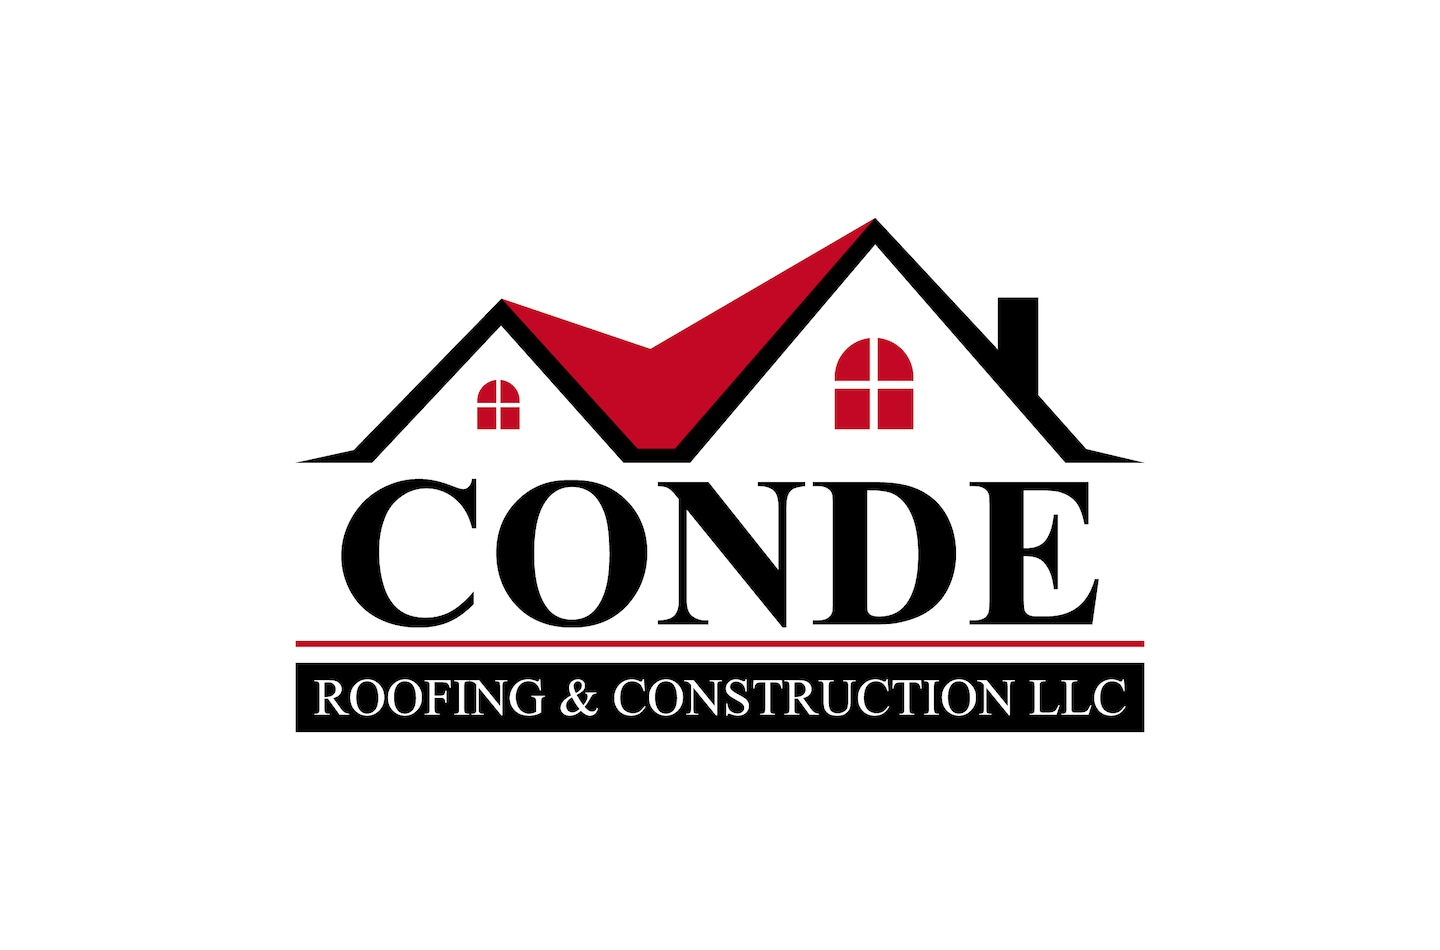 Conde Roofing & Construction LLC